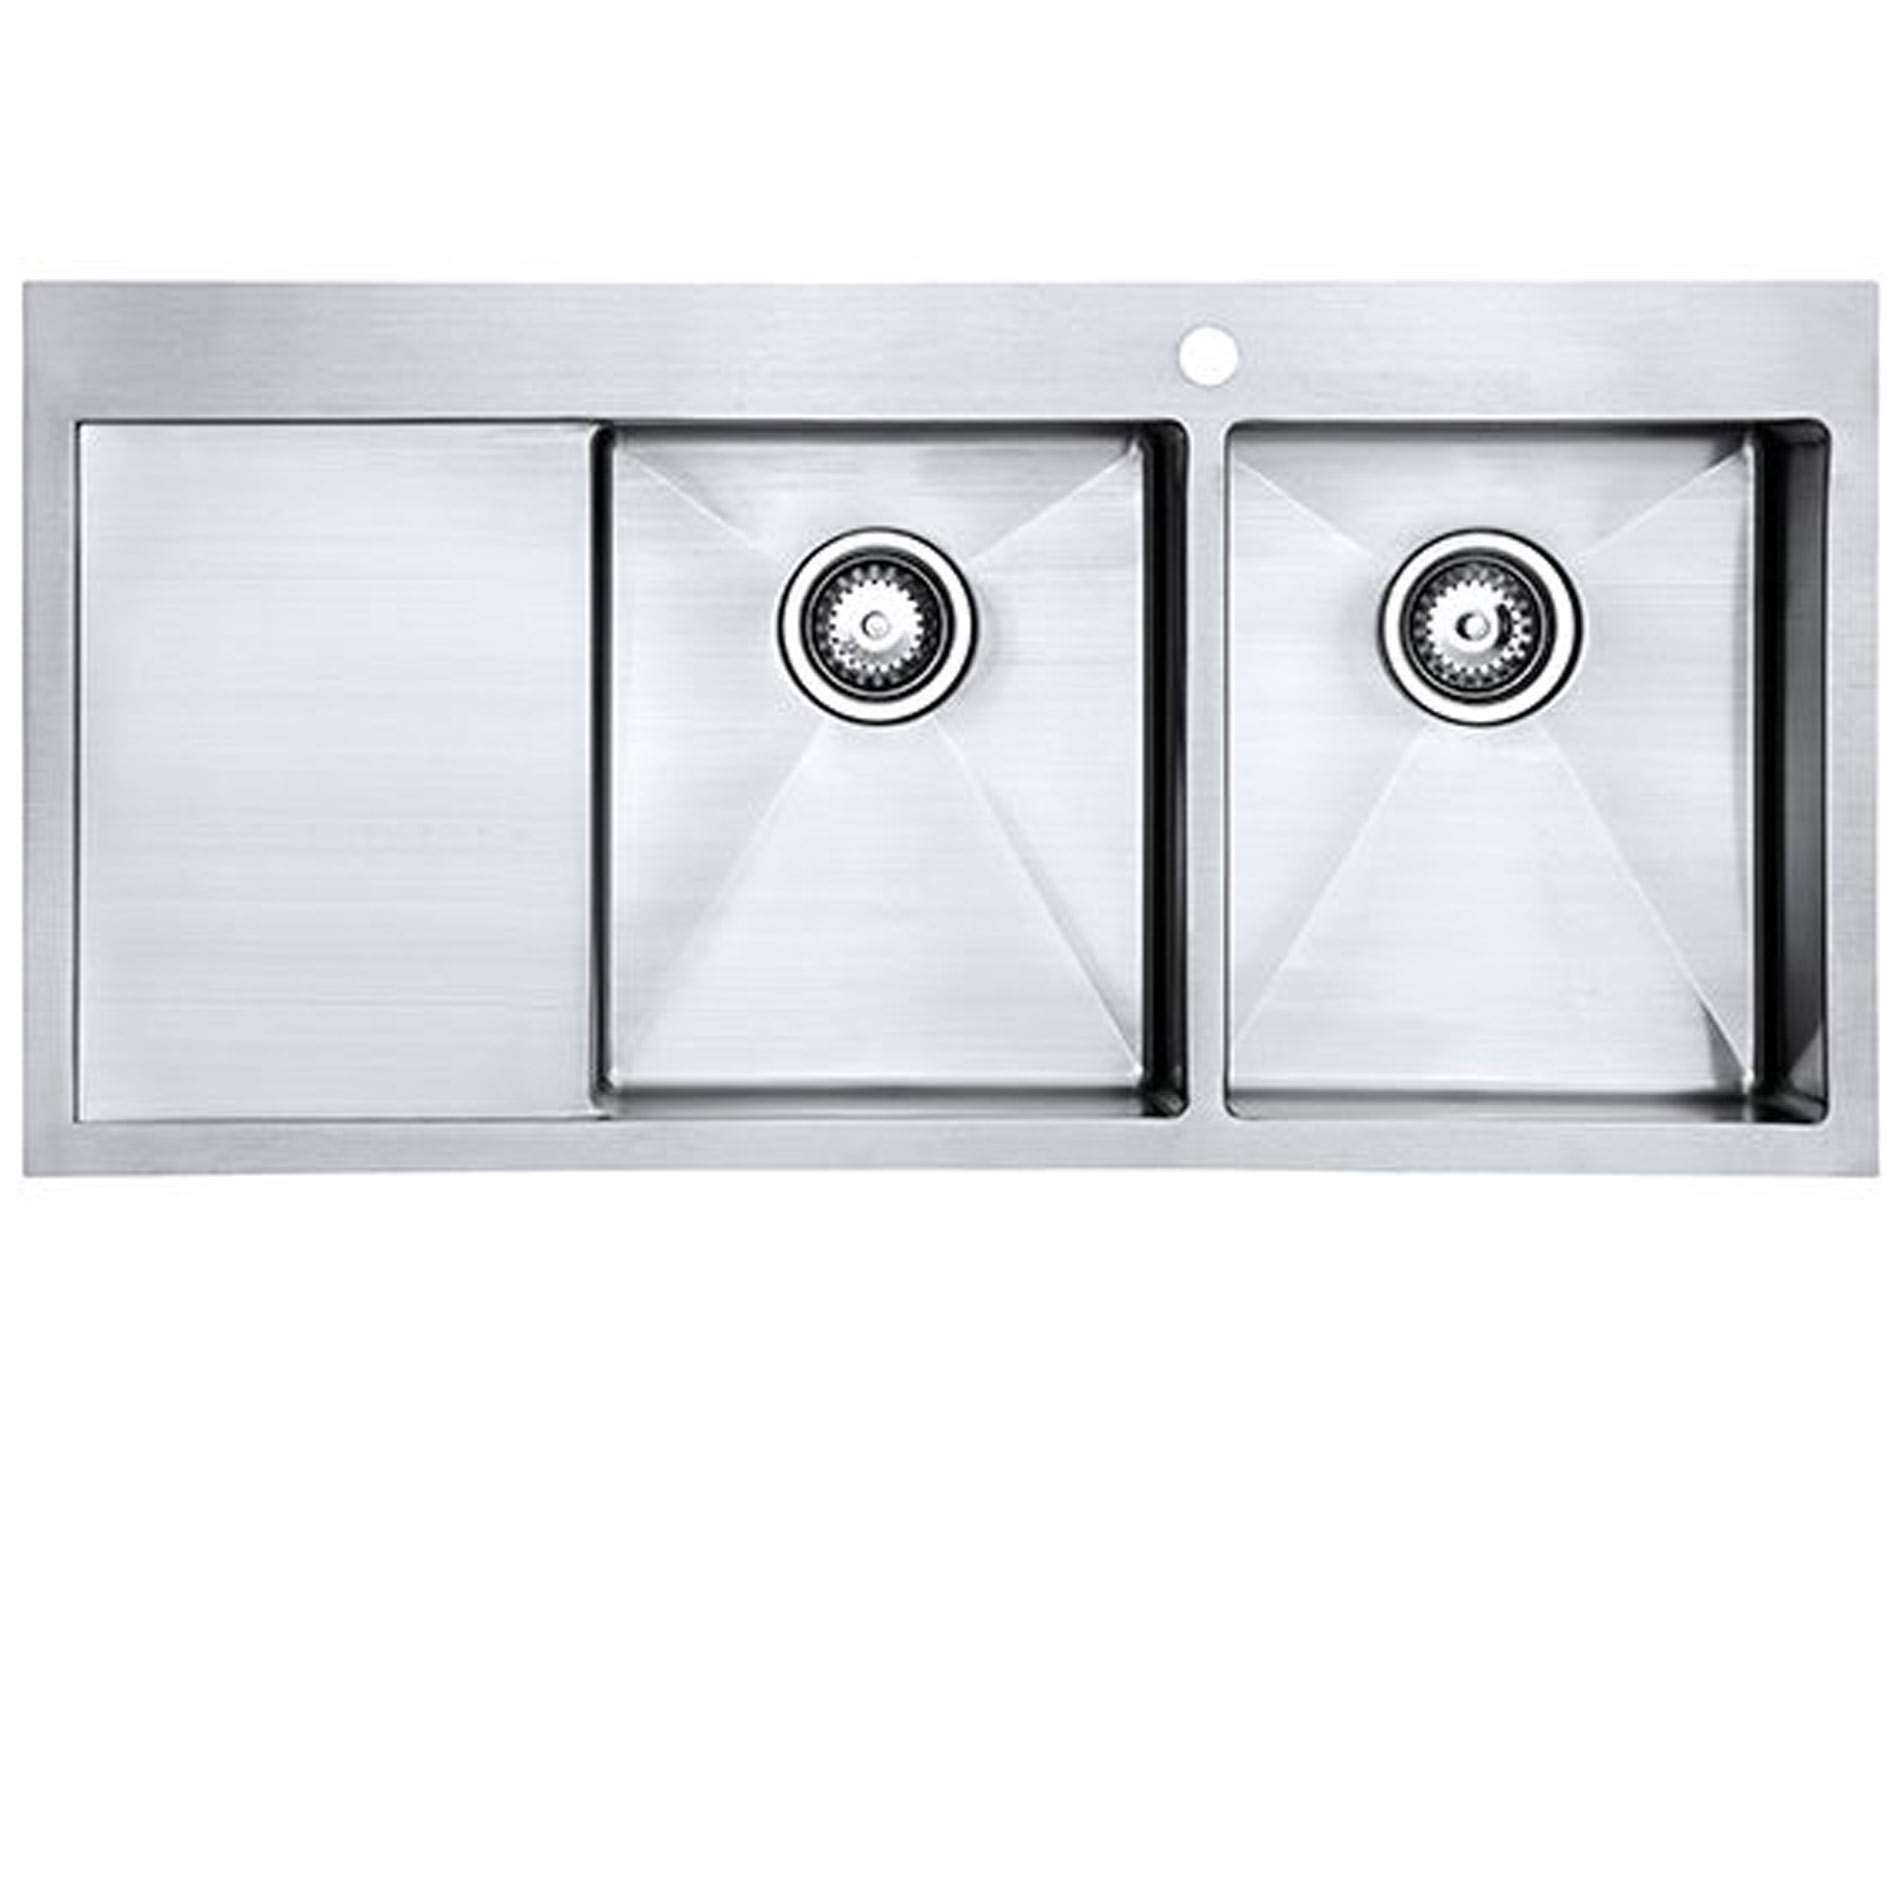 the 1810 company zenduo15 34 34 i f stainless steel sink